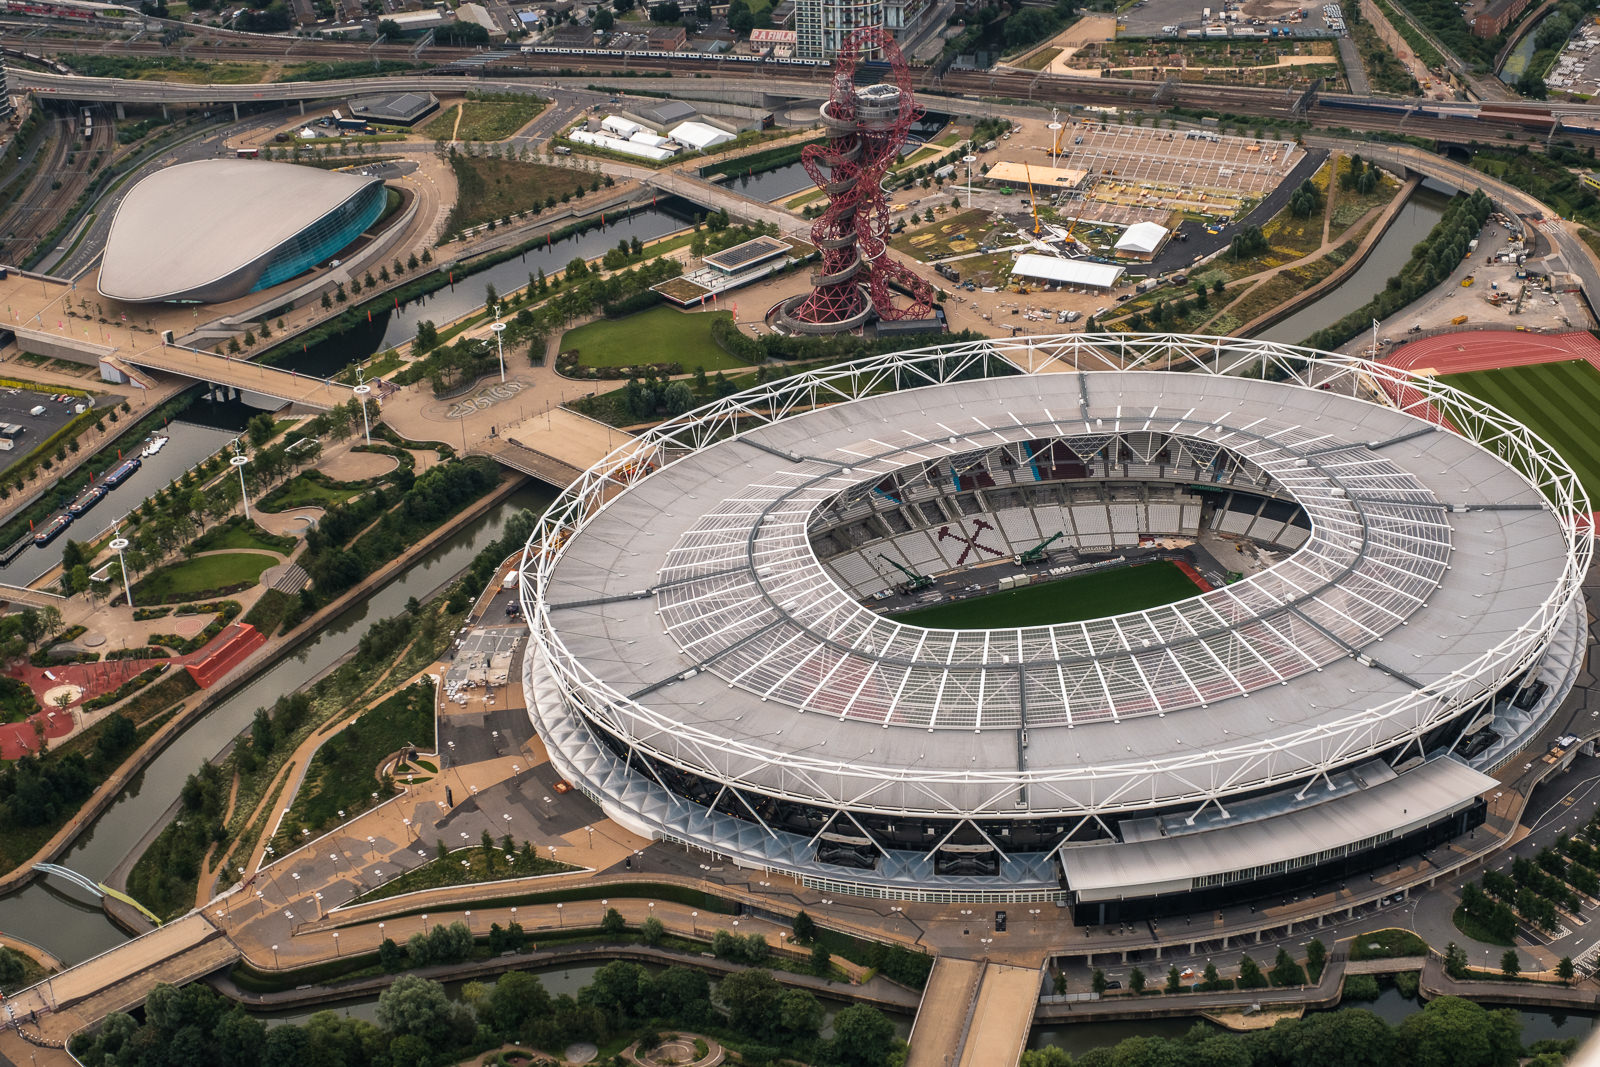 The Olympic Park - Stratford. The stadium is now home to West Ham FC. ISO640 16-55mm f9 1/250s